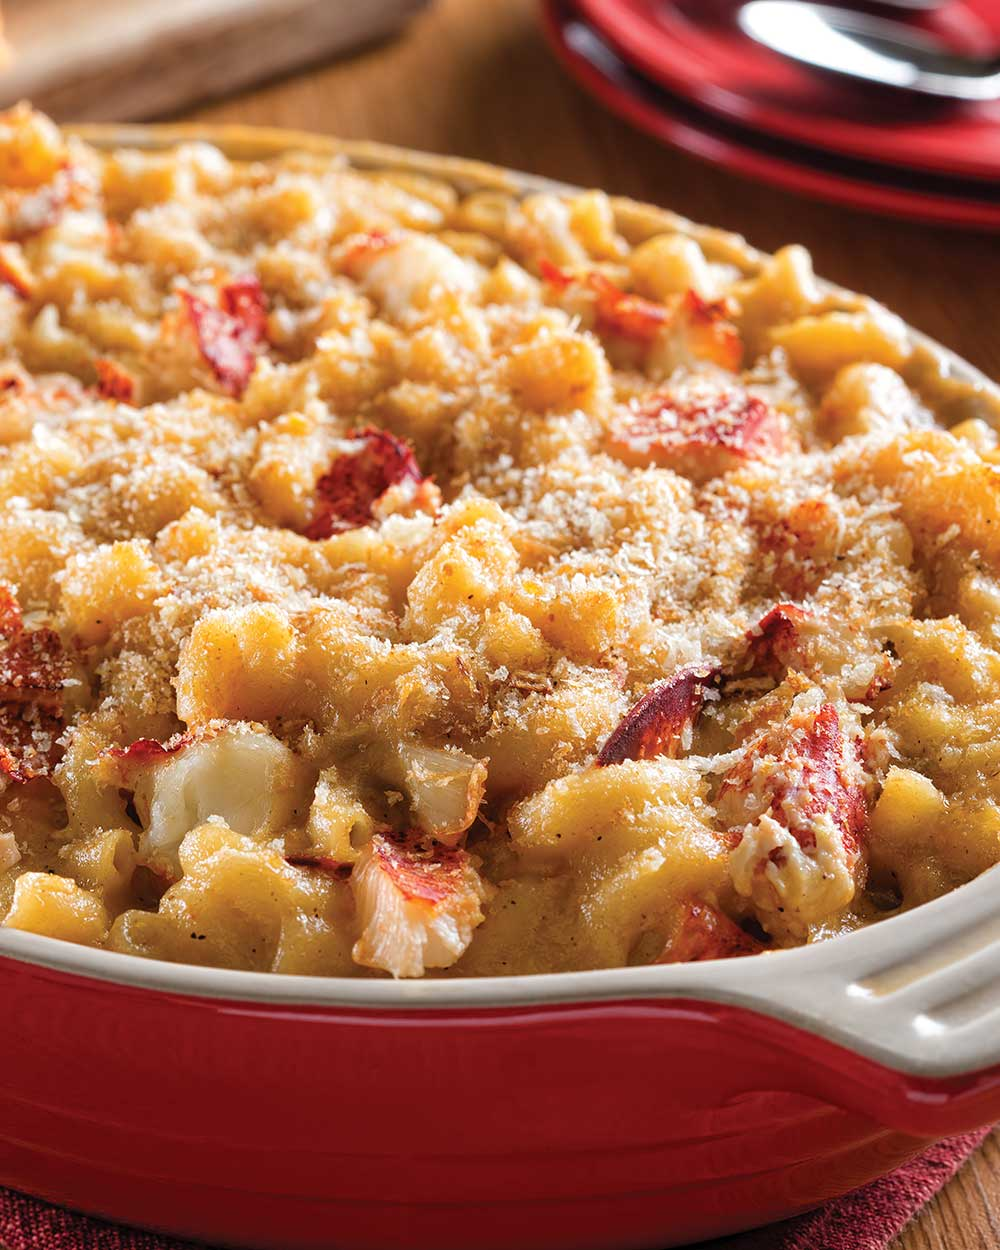 Cheesy Baked Macaroni and Cheese